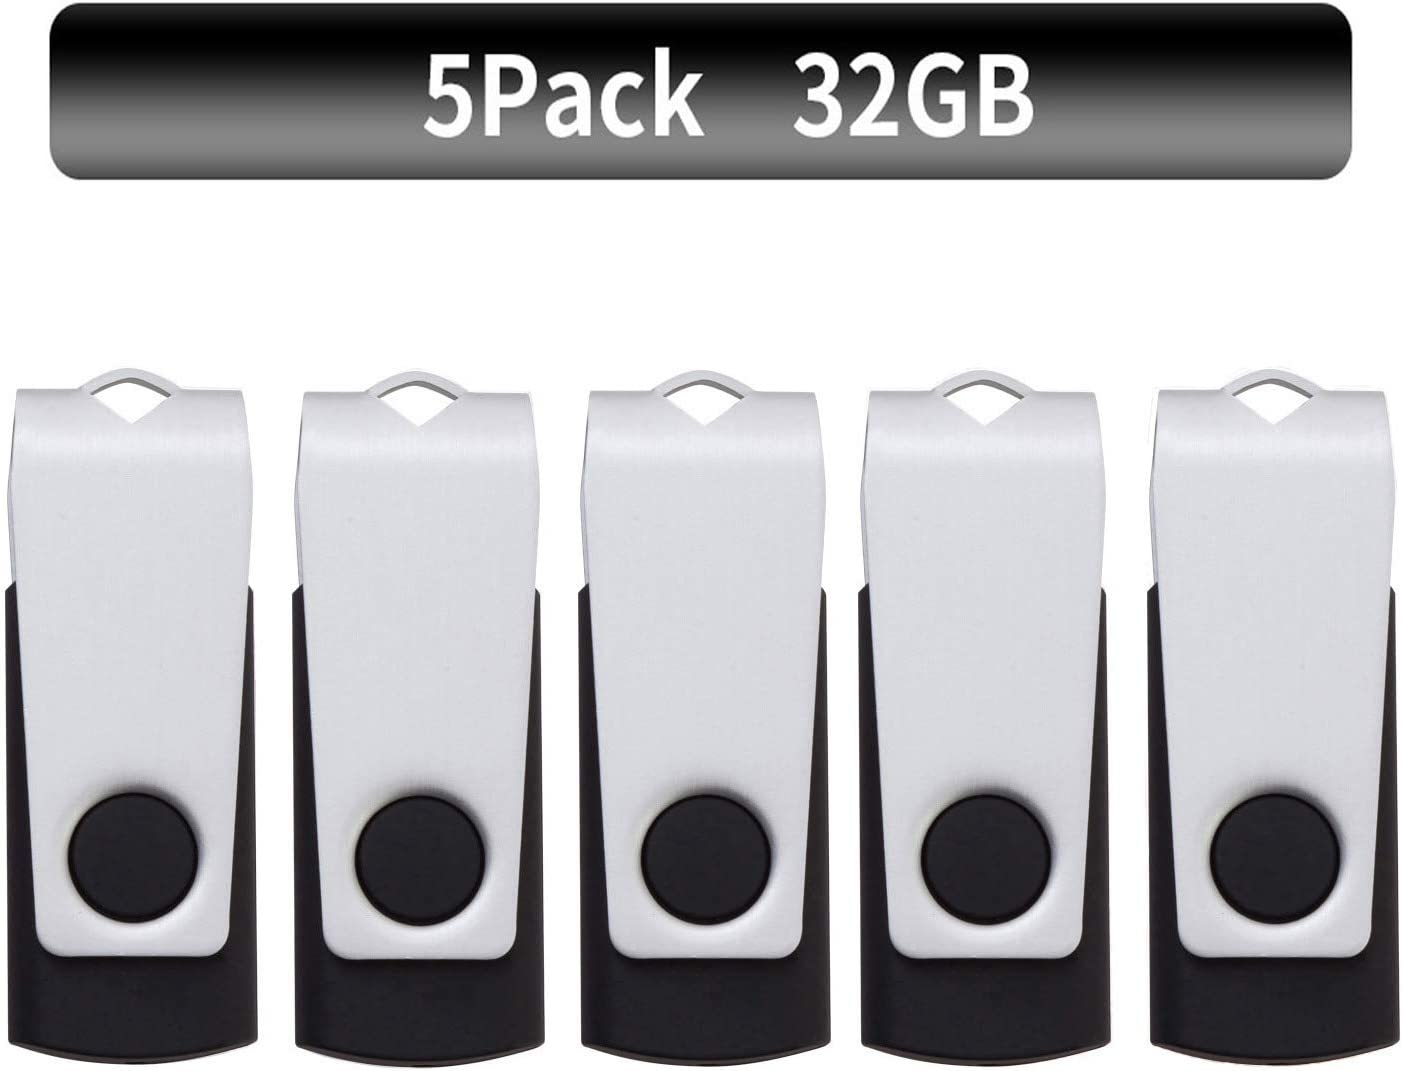 TPSON Memoria USB 32GB Pack de 5 USB Flash Drive 2.0 Pendrive 32GB Memoria Flash USB Stick (32GB, Negro)